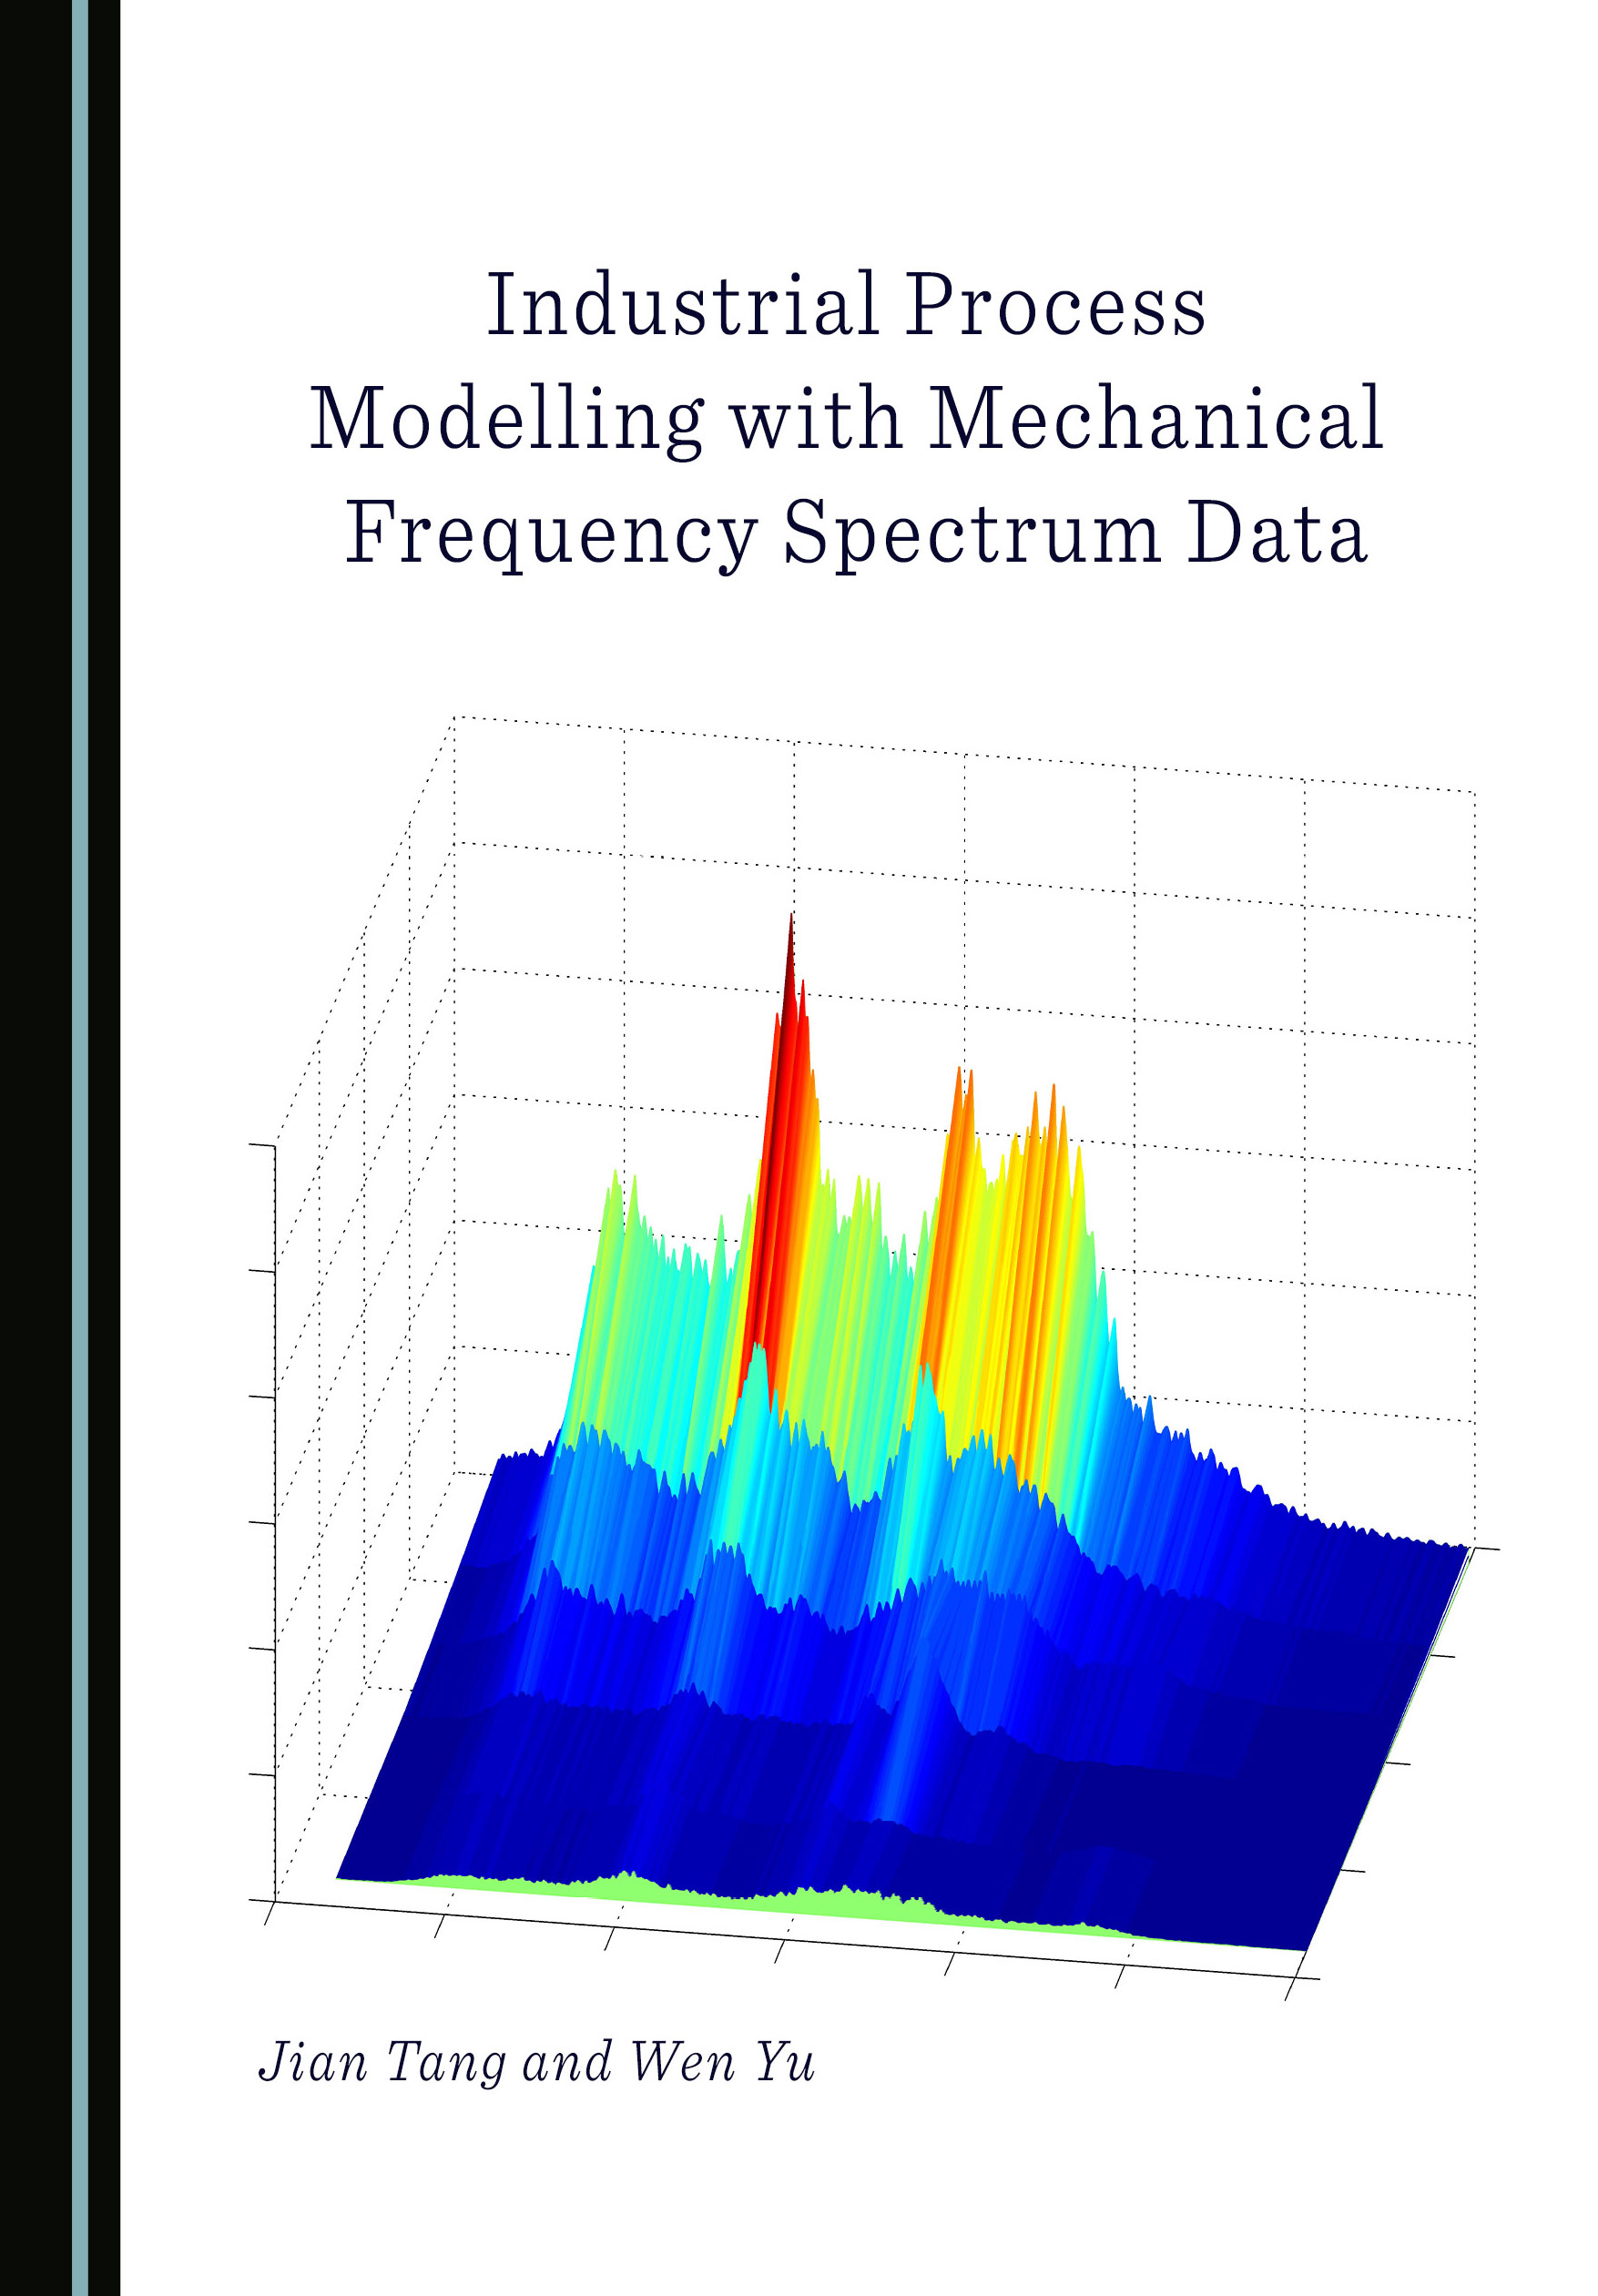 Industrial Process Modelling with Mechanical Frequency Spectrum Data